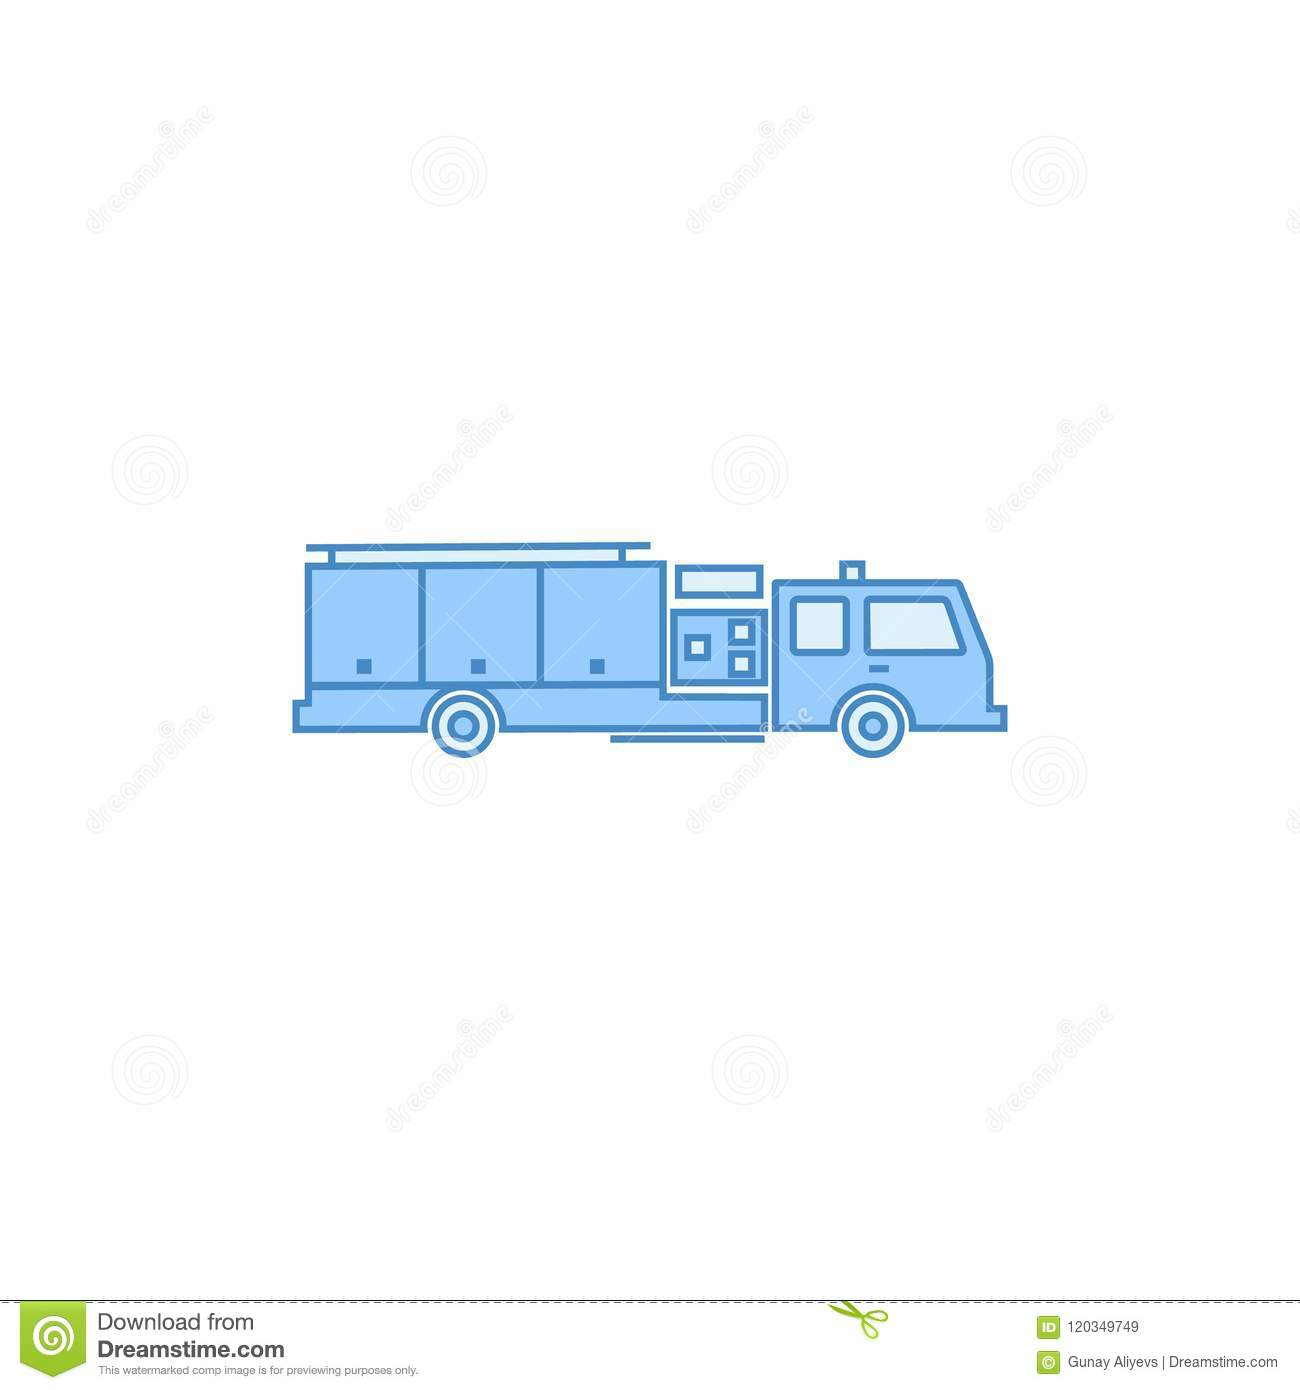 Fire Truck Filled Outline Icon Element Of Transport For Mobile Concept And Web Apps